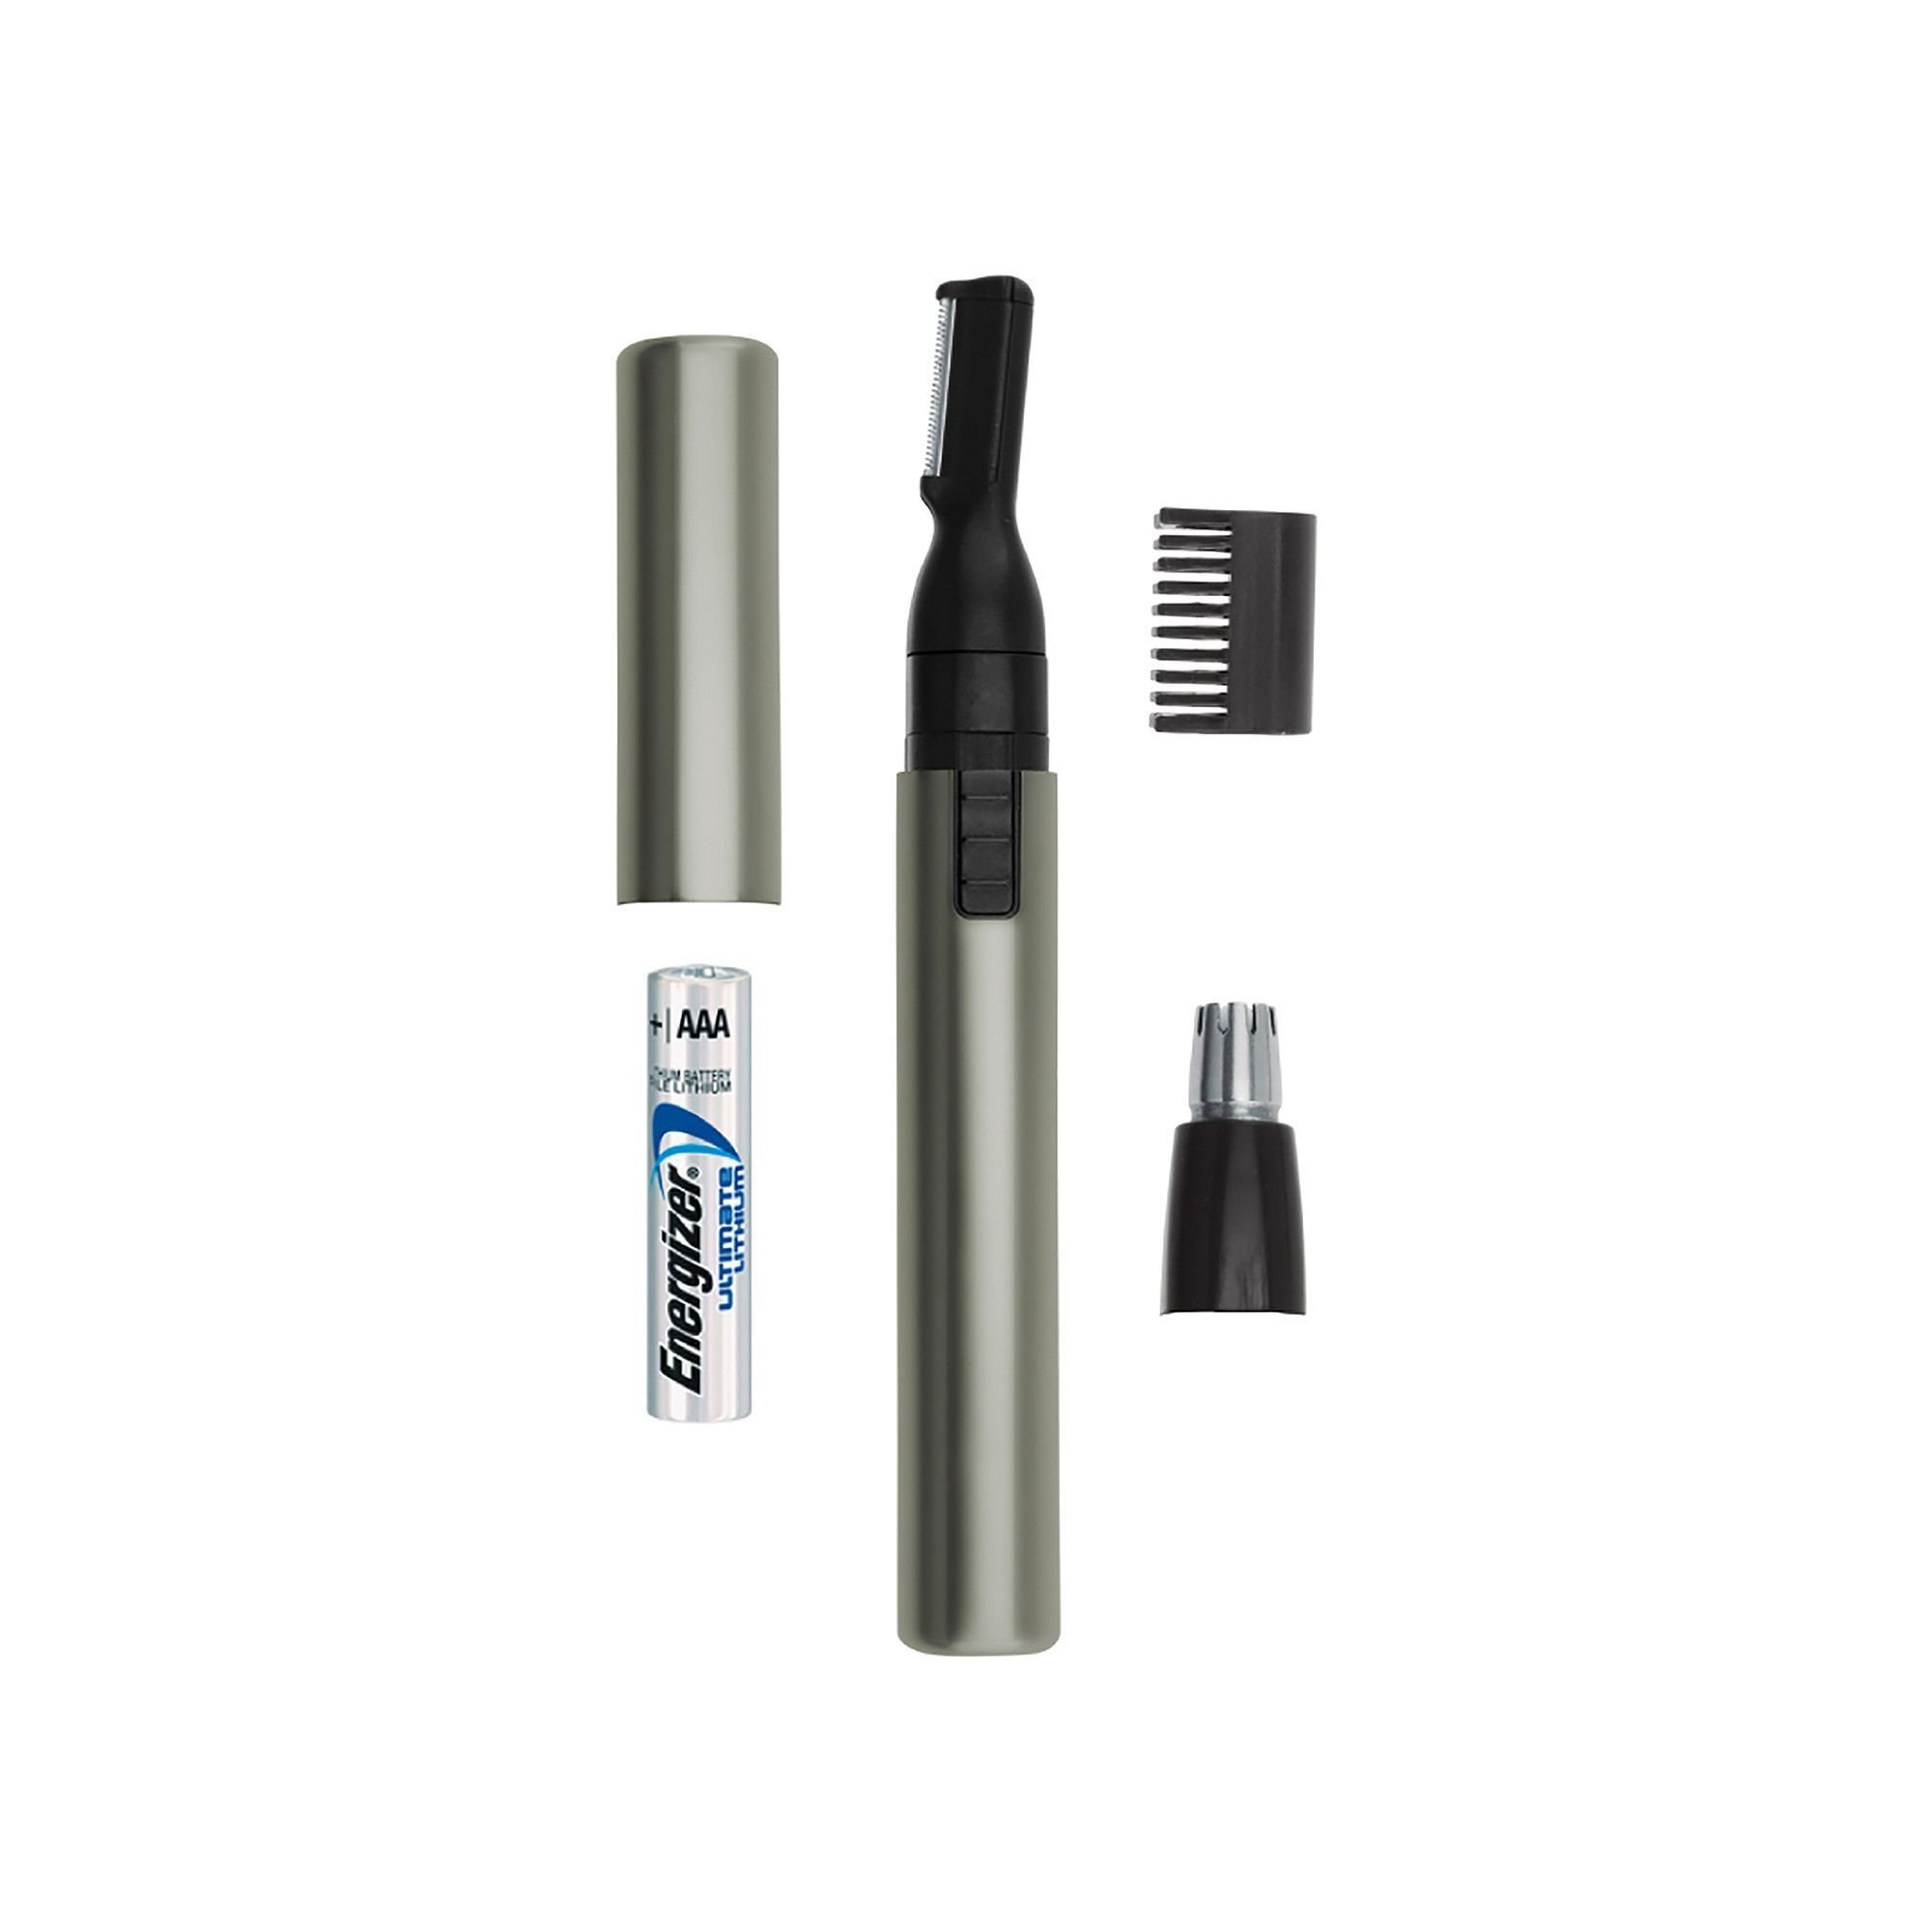 Wahl Lithium Micro Groomsman Trimmer Nose Hair Trimmer Brows